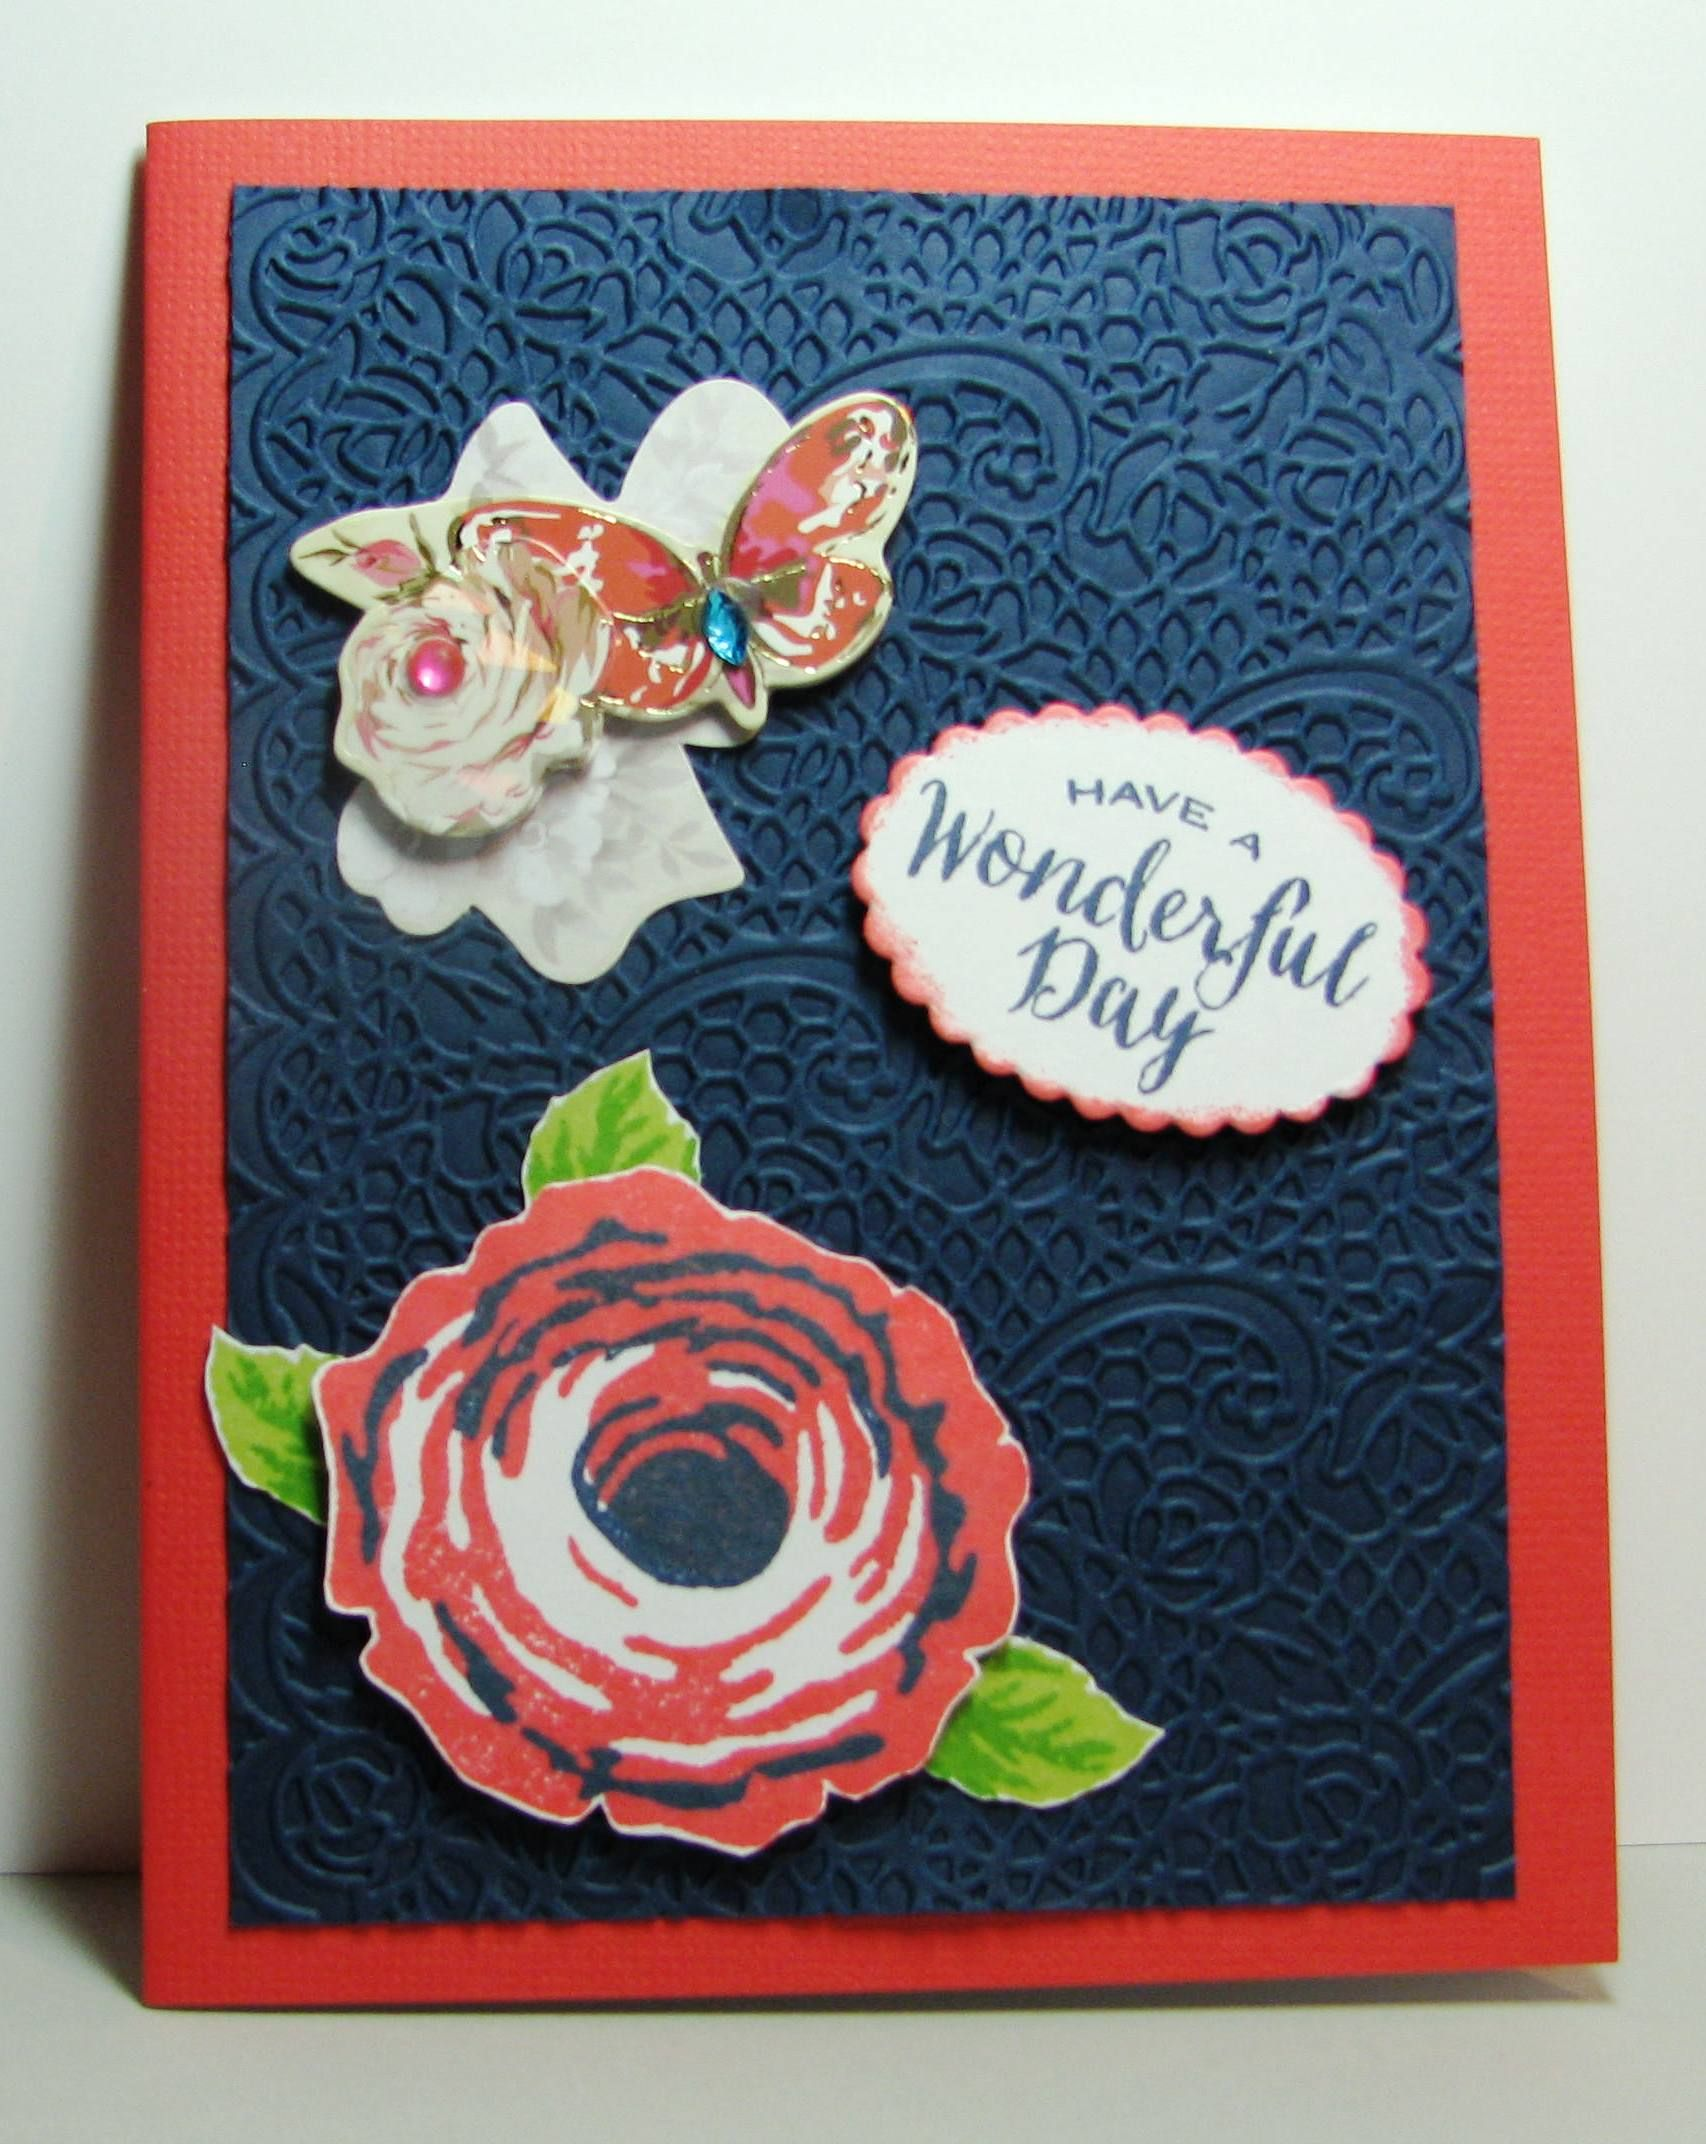 Wonderful day gina k old country roses my handmade greeting cards